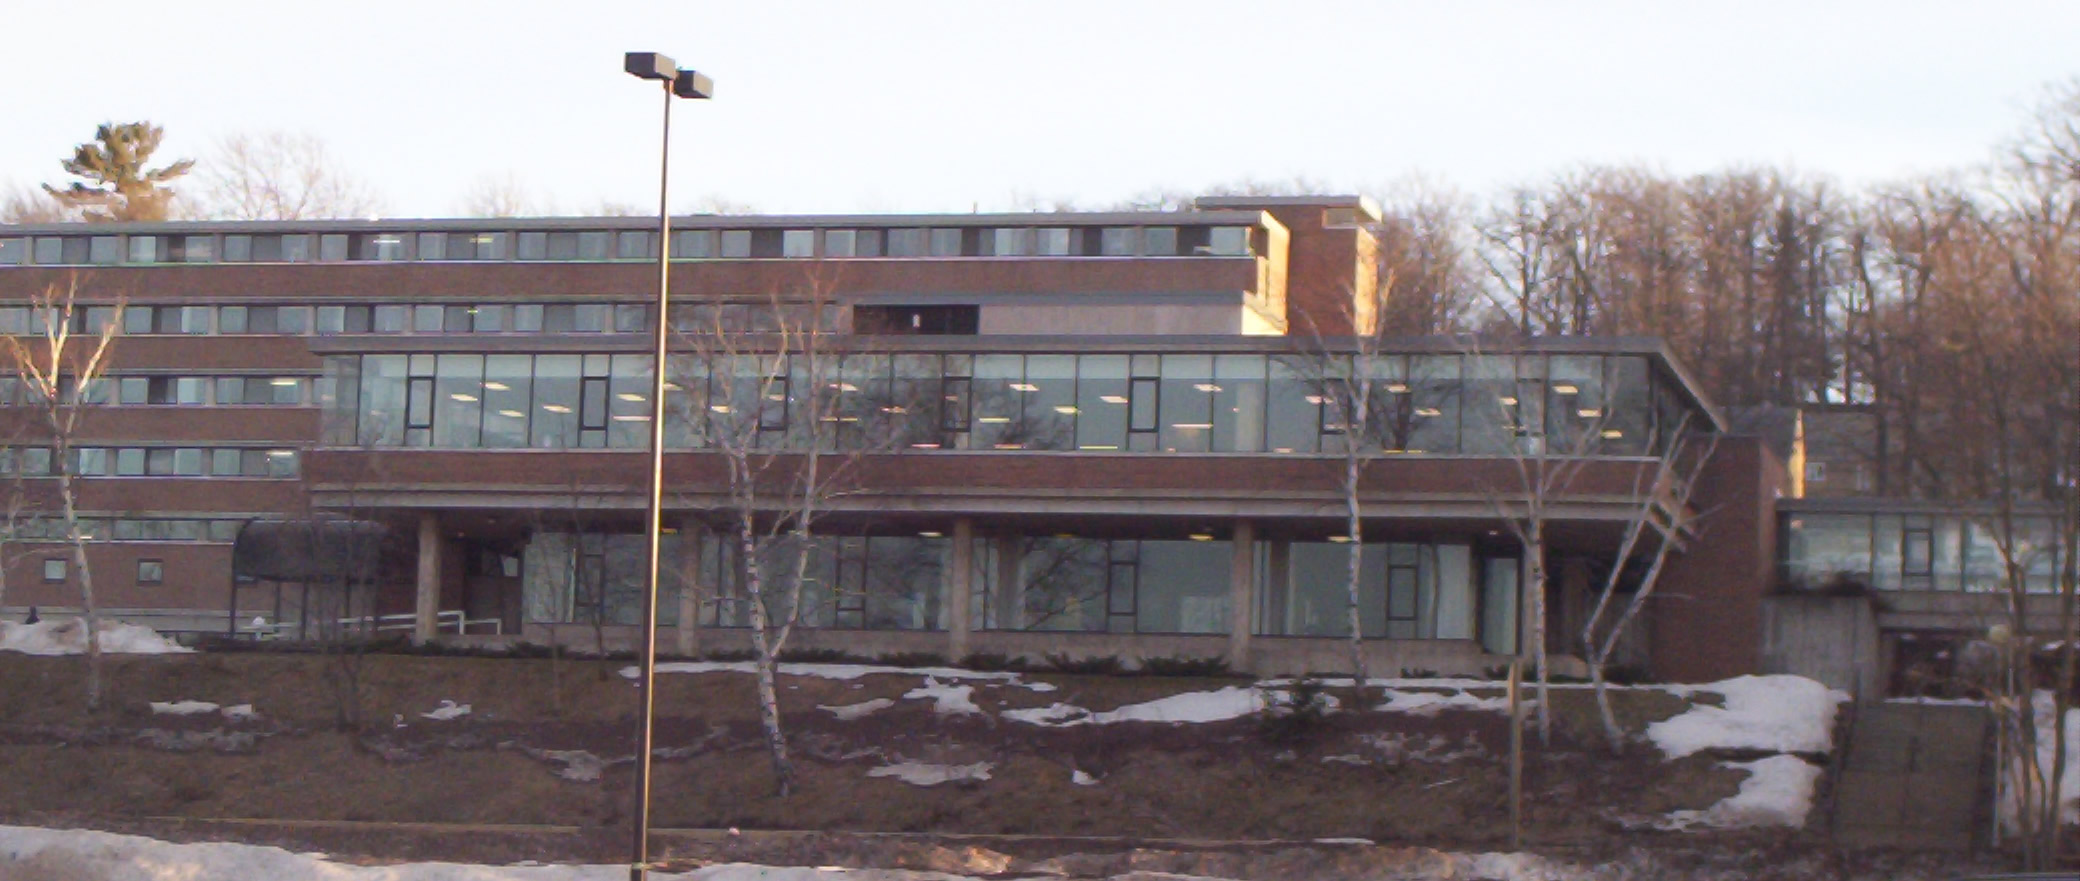 Michigan Technological University Mcnair Residence Hall